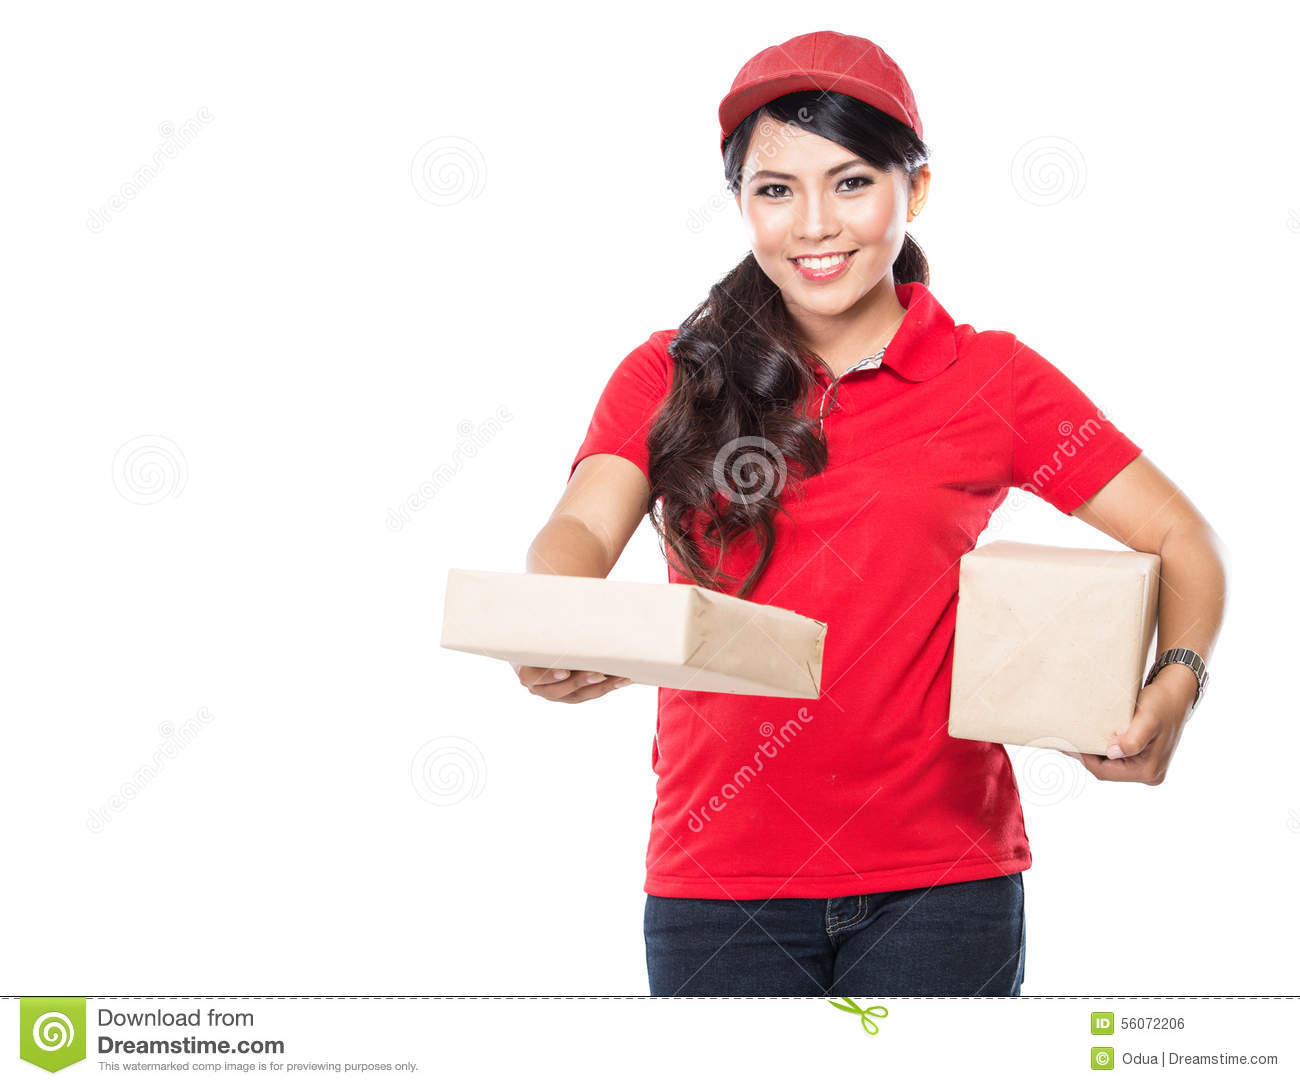 Female delivery service happily delivering package to costumer  sc 1 st  Dreamstime.com & Female Delivery Service Happily Delivering Package To Costumer Stock ...